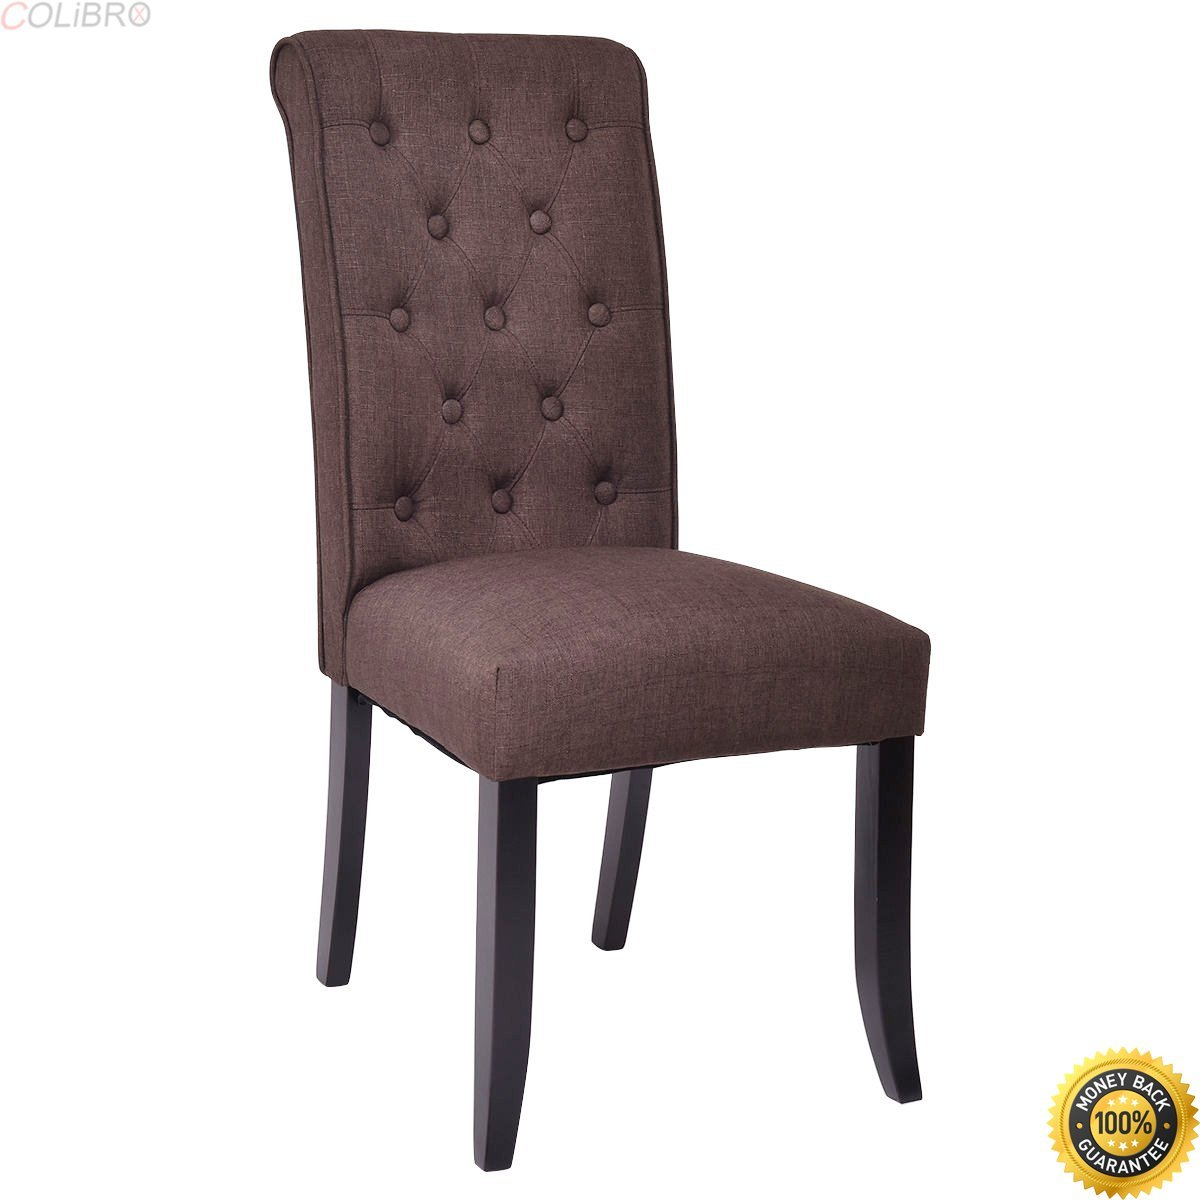 Get quotations · colibrox set of 2 dining chairs fabric upholstered tufted armless accent home kitchen new